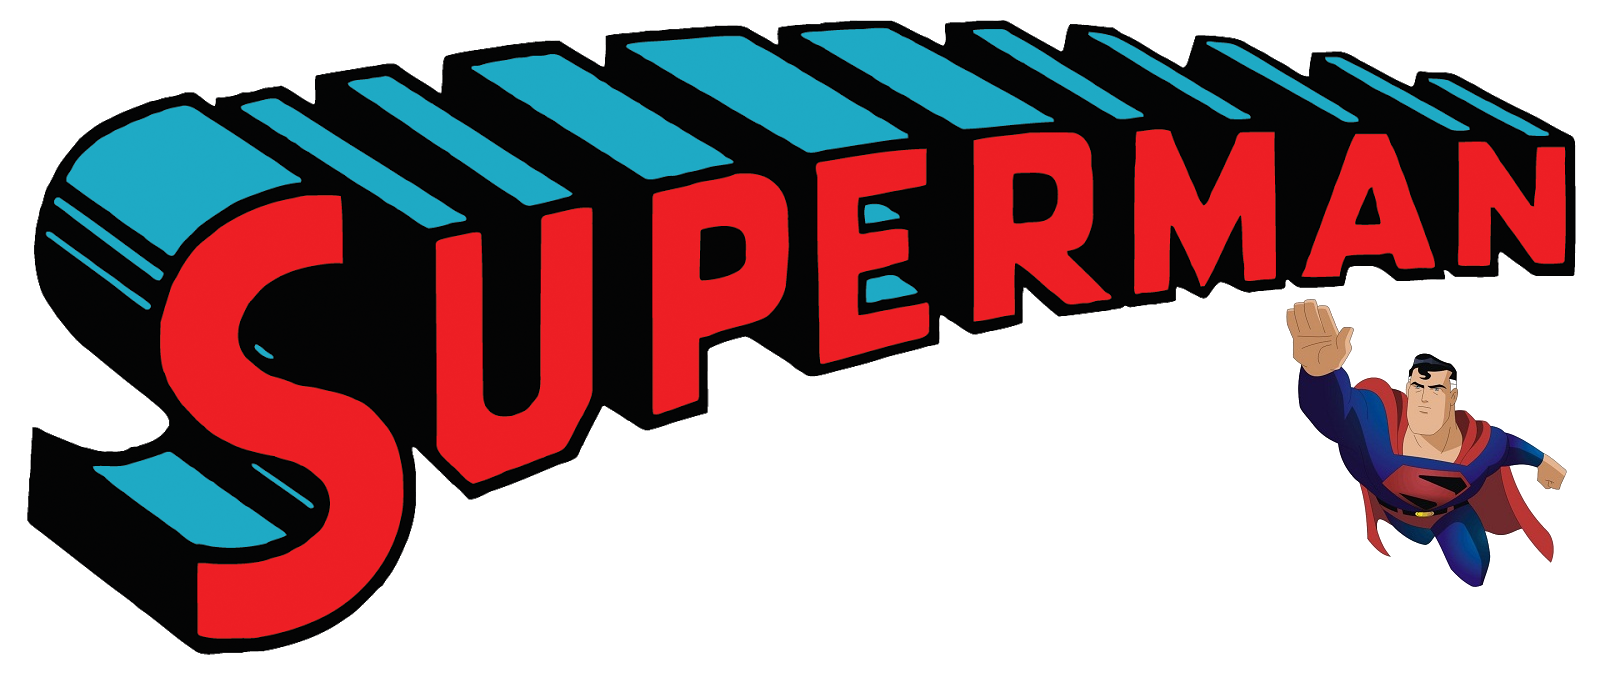 superman_classic_logo__vector__by_bean525-d68btk7_Transparent